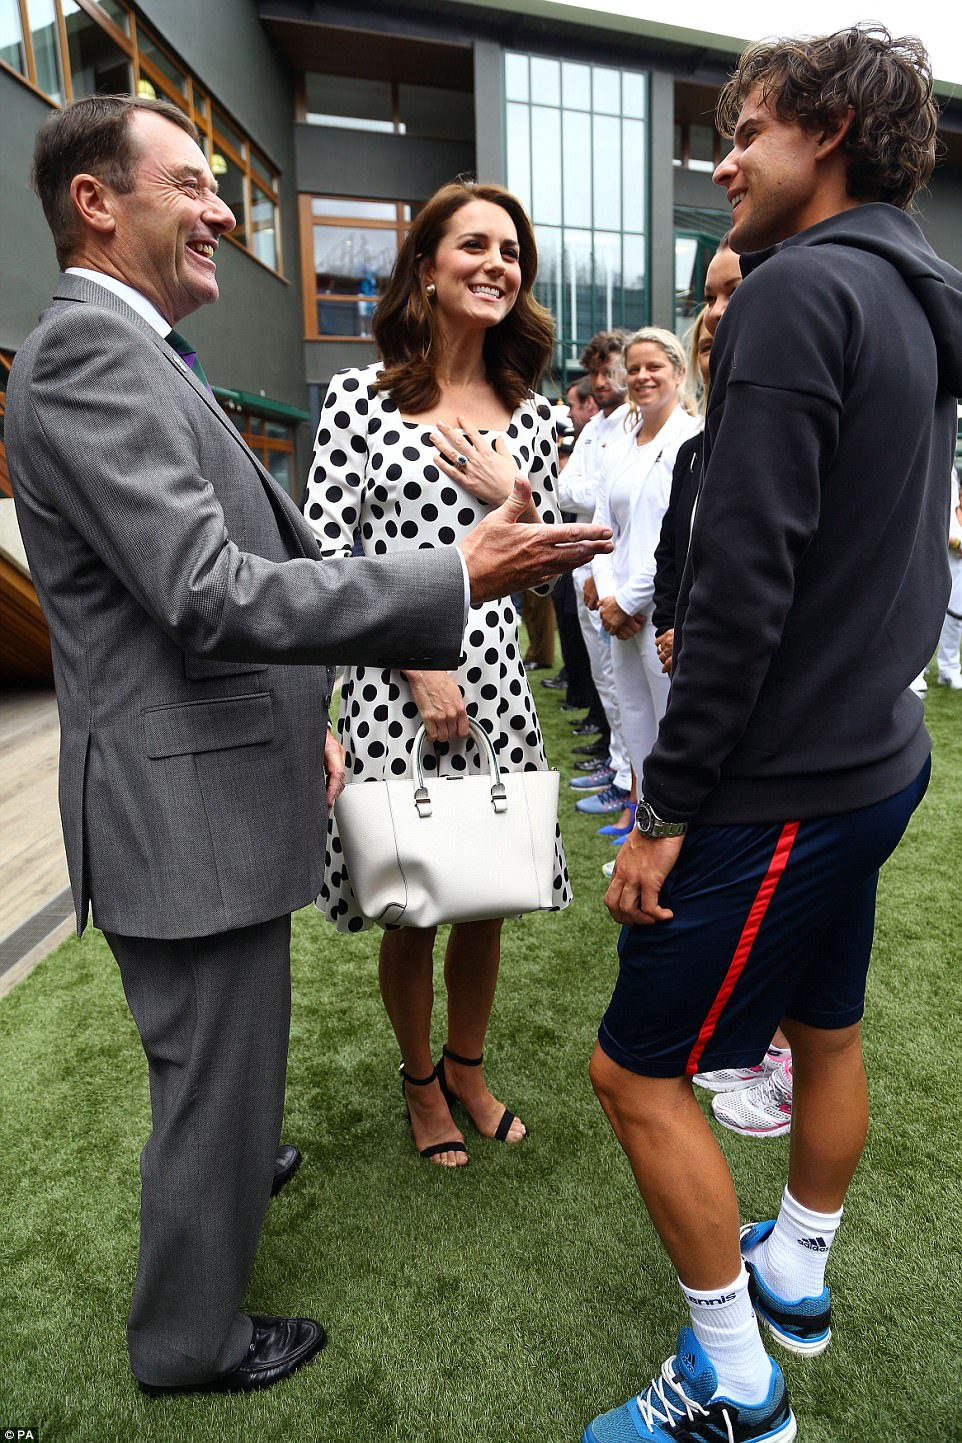 Kate was certainly in her element as she chatted to Austrian player Dominic Thiem, who is dating former beauty queen Romana Exenberger